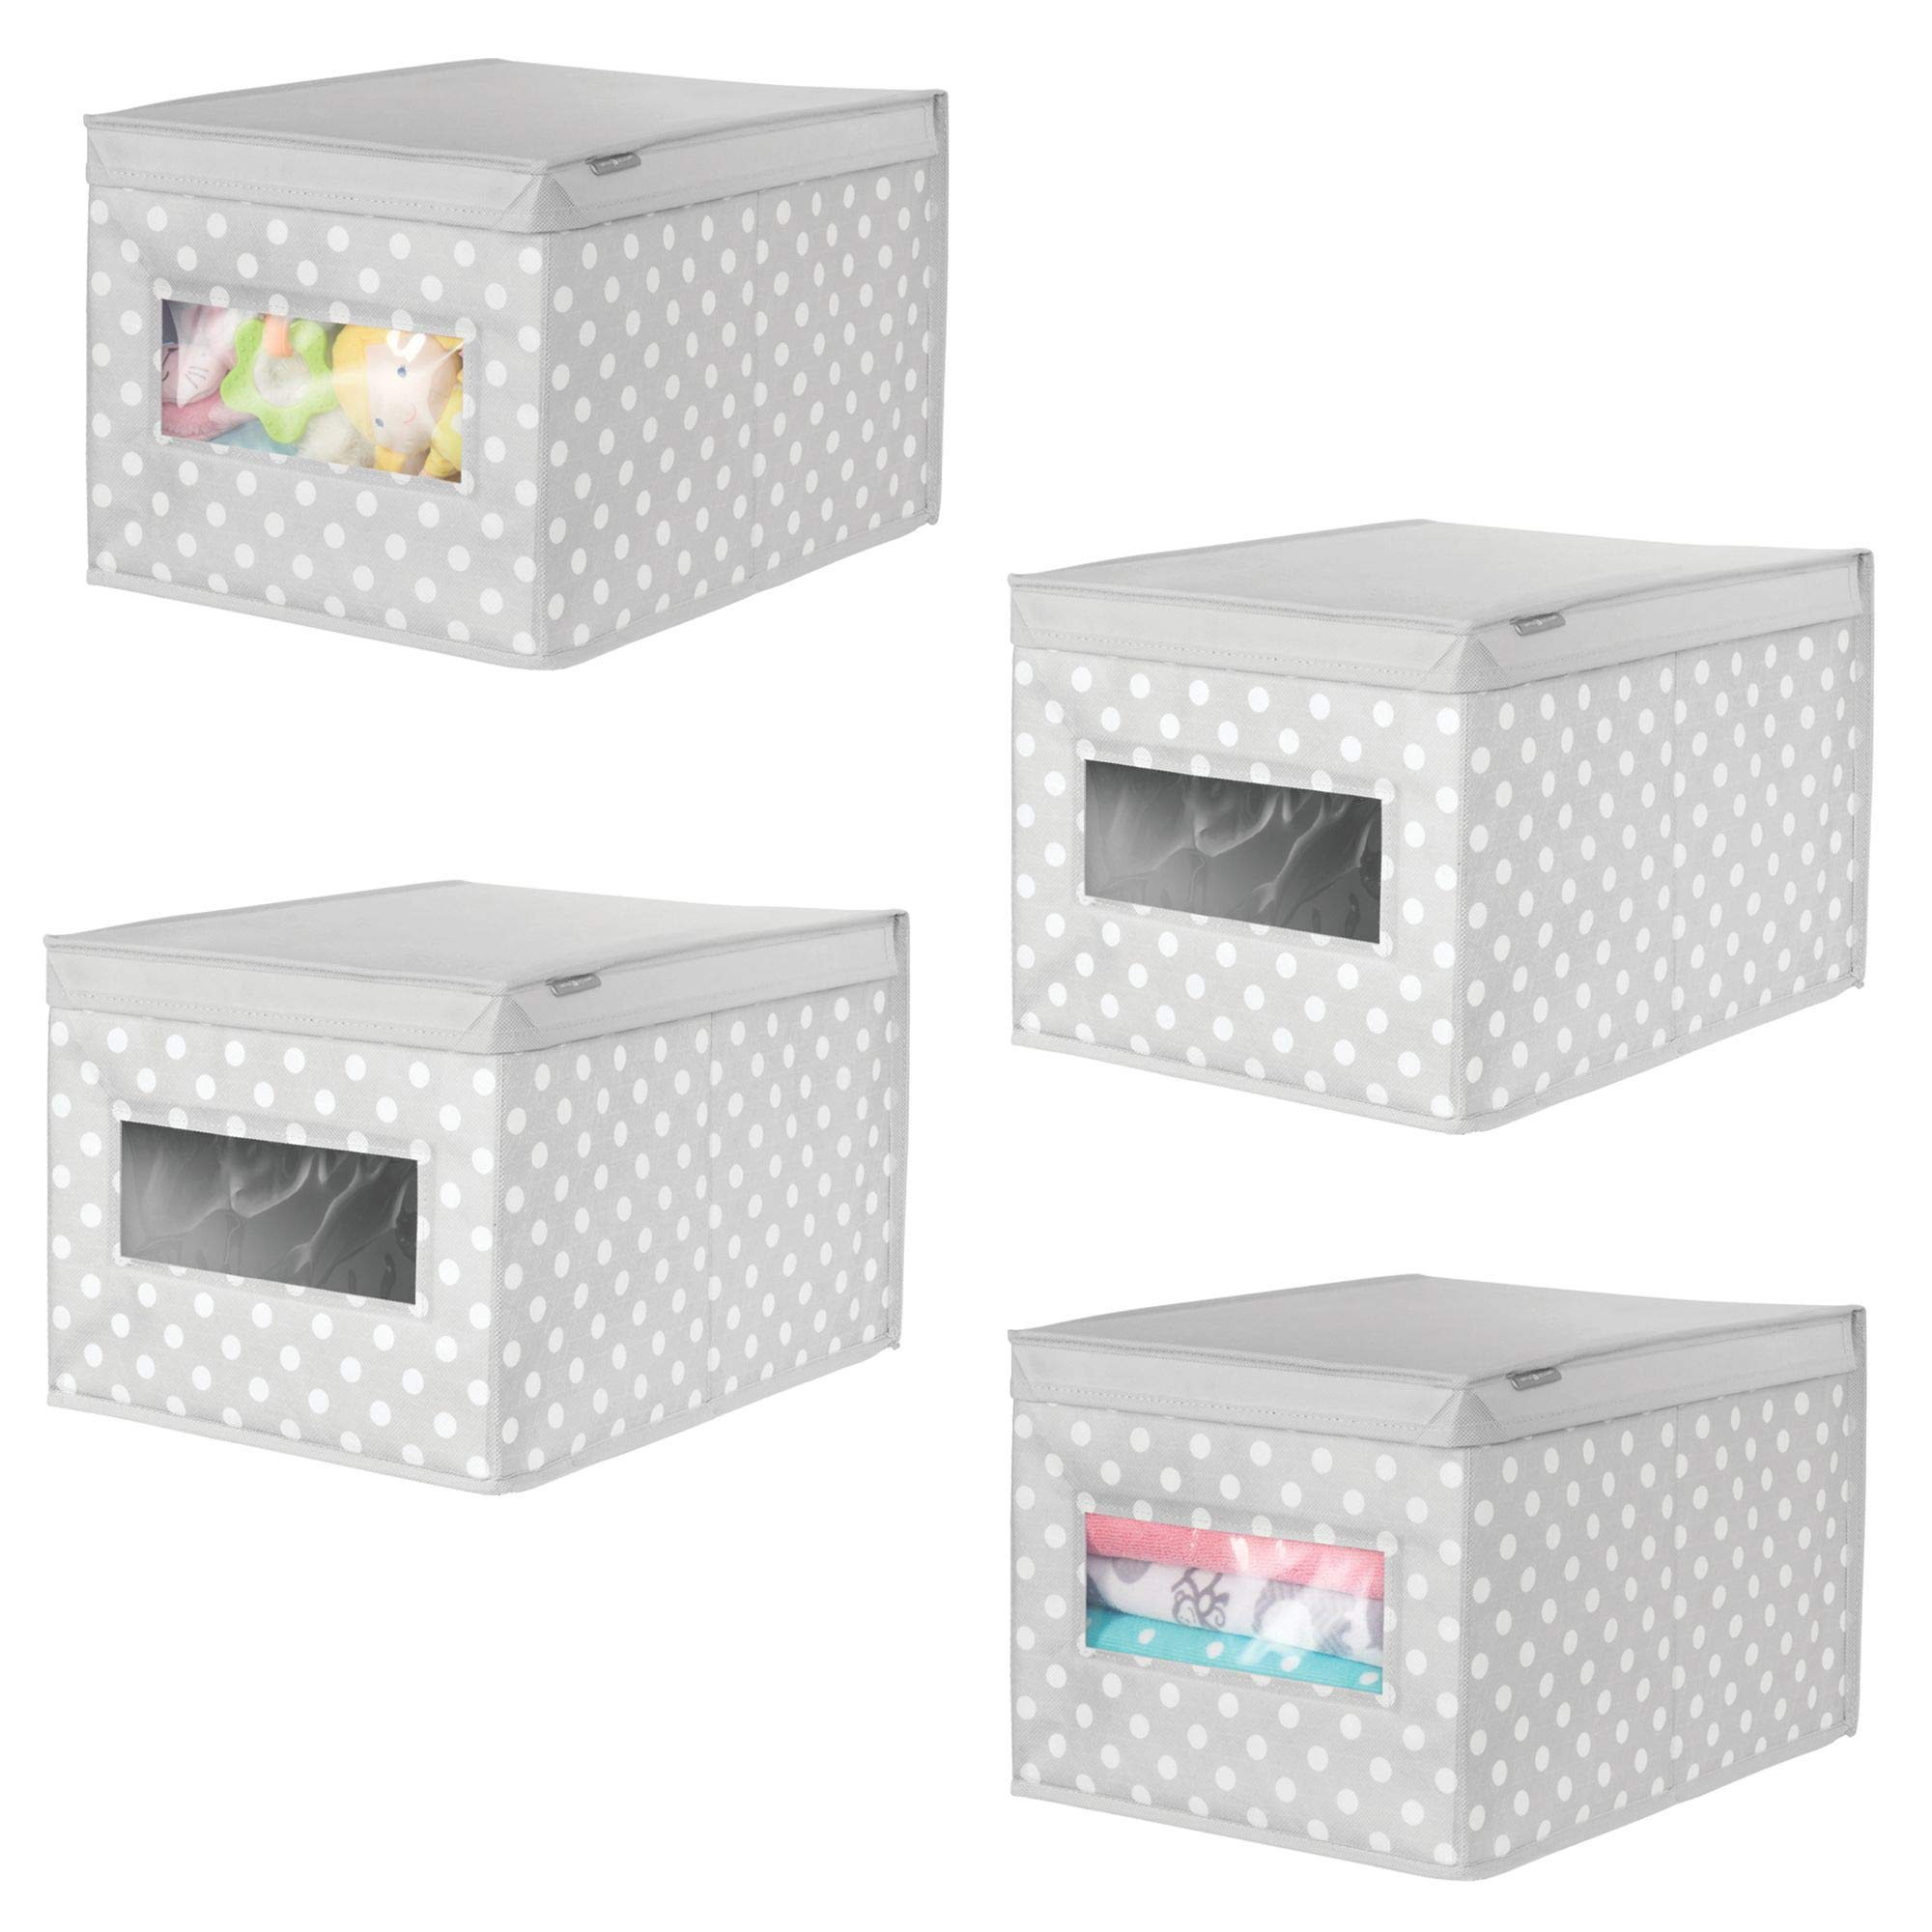 mDesign Soft Stackable Fabric Closet Storage Organizer Holder Box - Clear Window, Attached Hinged Lid, for Child/Kids Room, Nursery - Polka Dot Pattern � Large, Pack of 4, Light Gray with White Dots